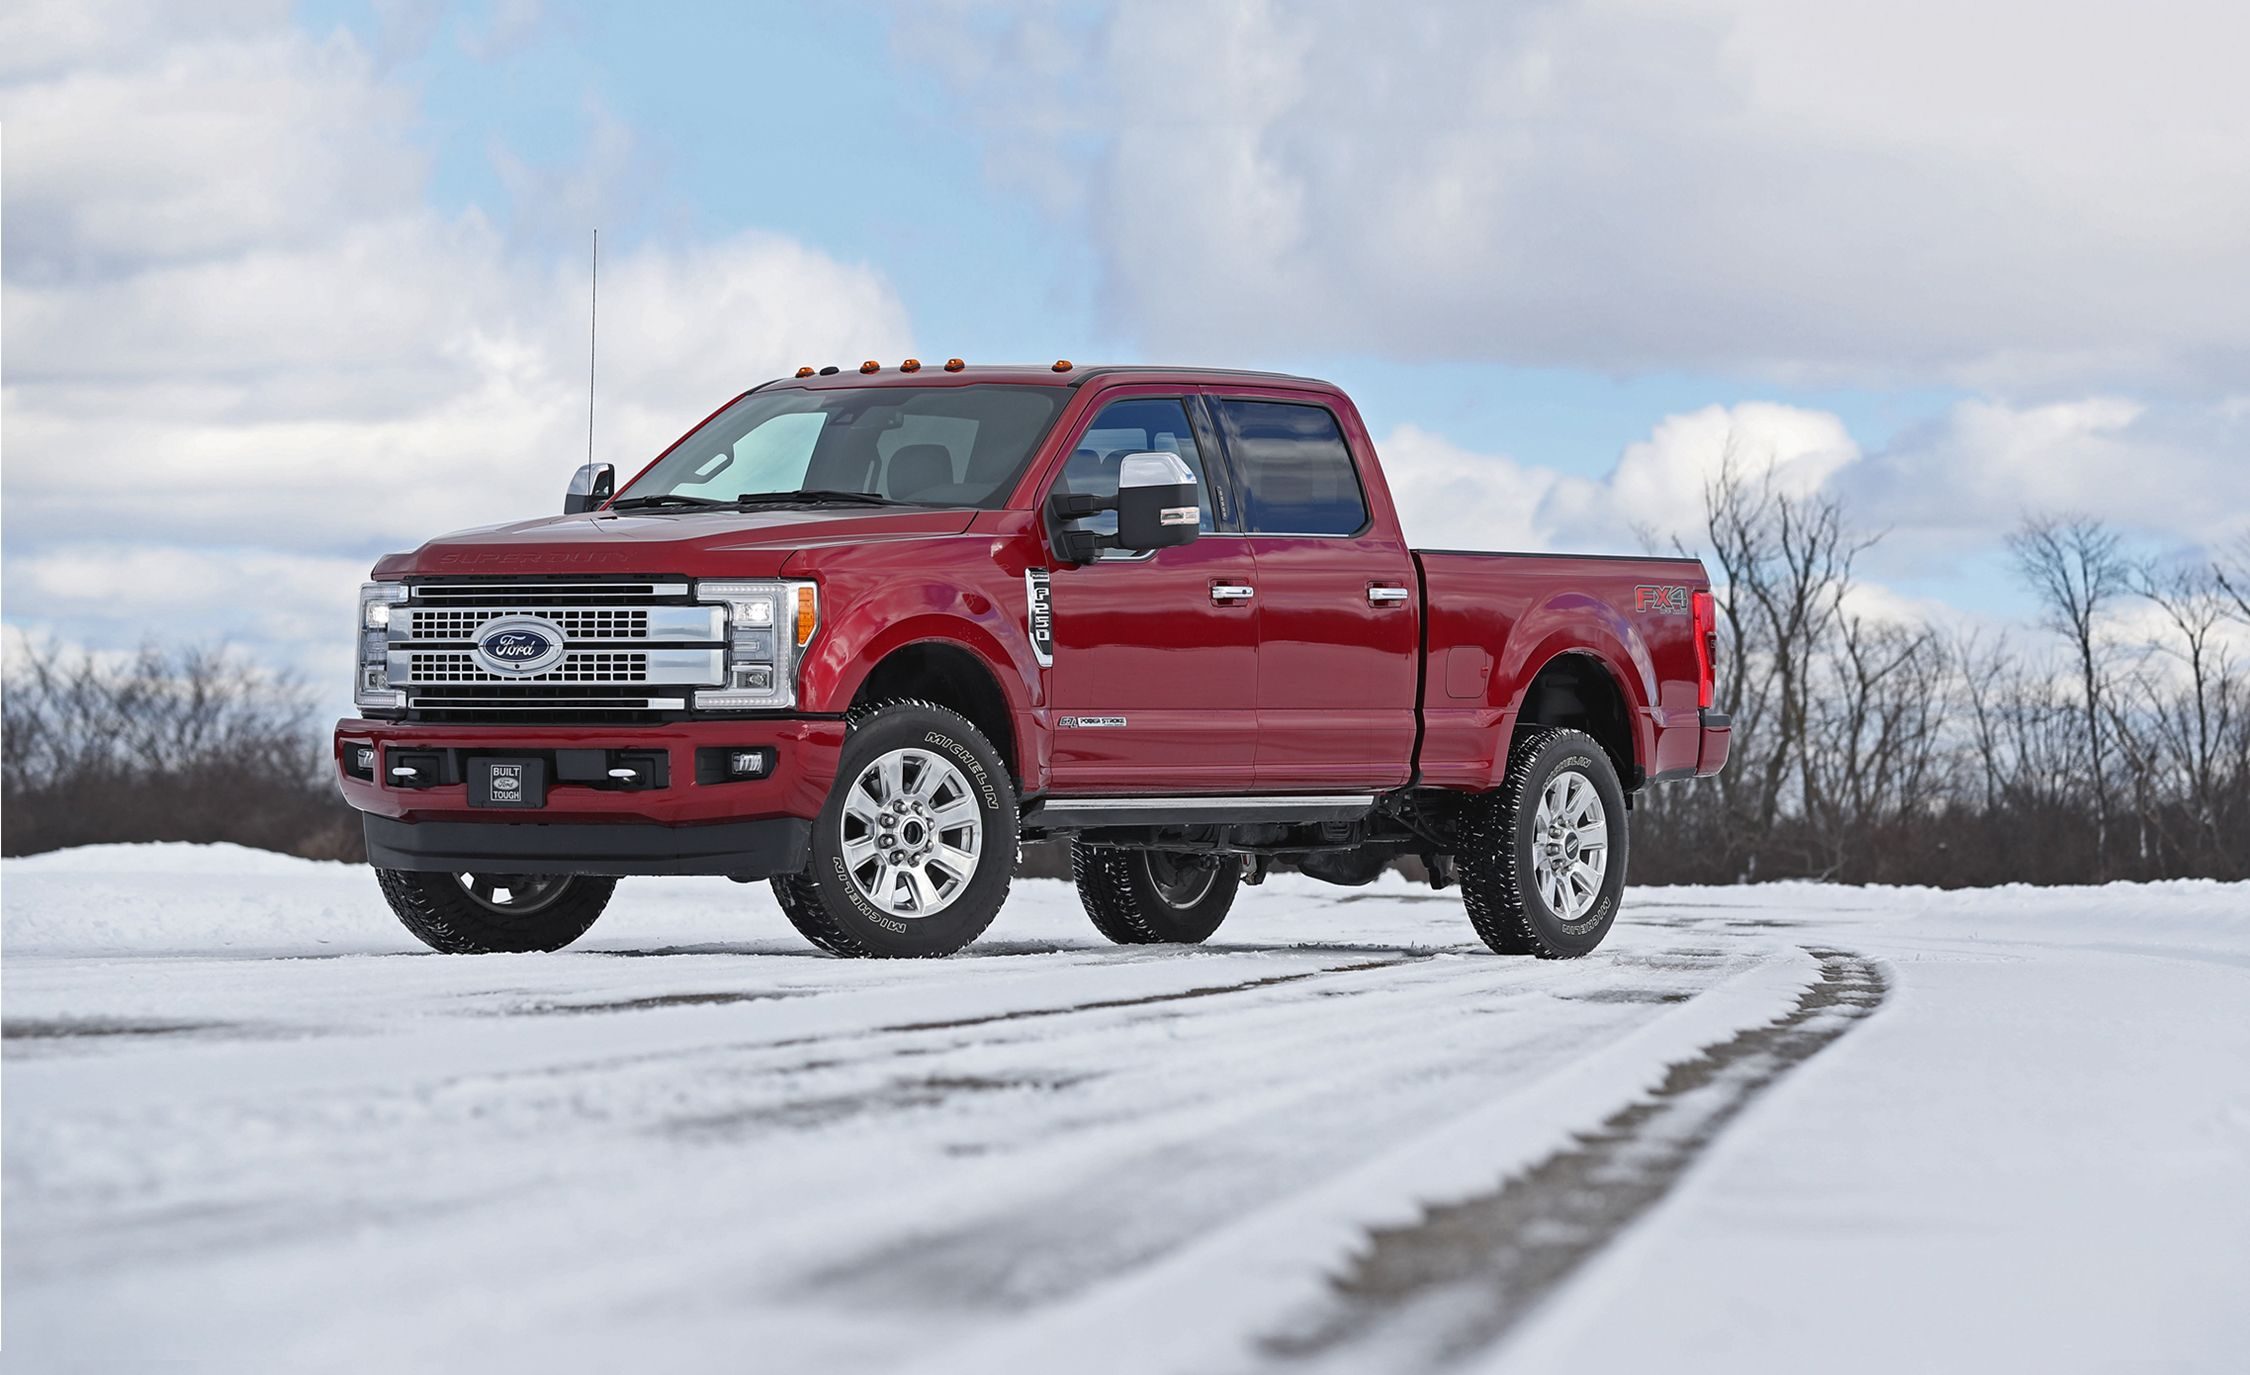 2018 Ford F-series Super Duty | In-Depth Model Review | Car and Driver